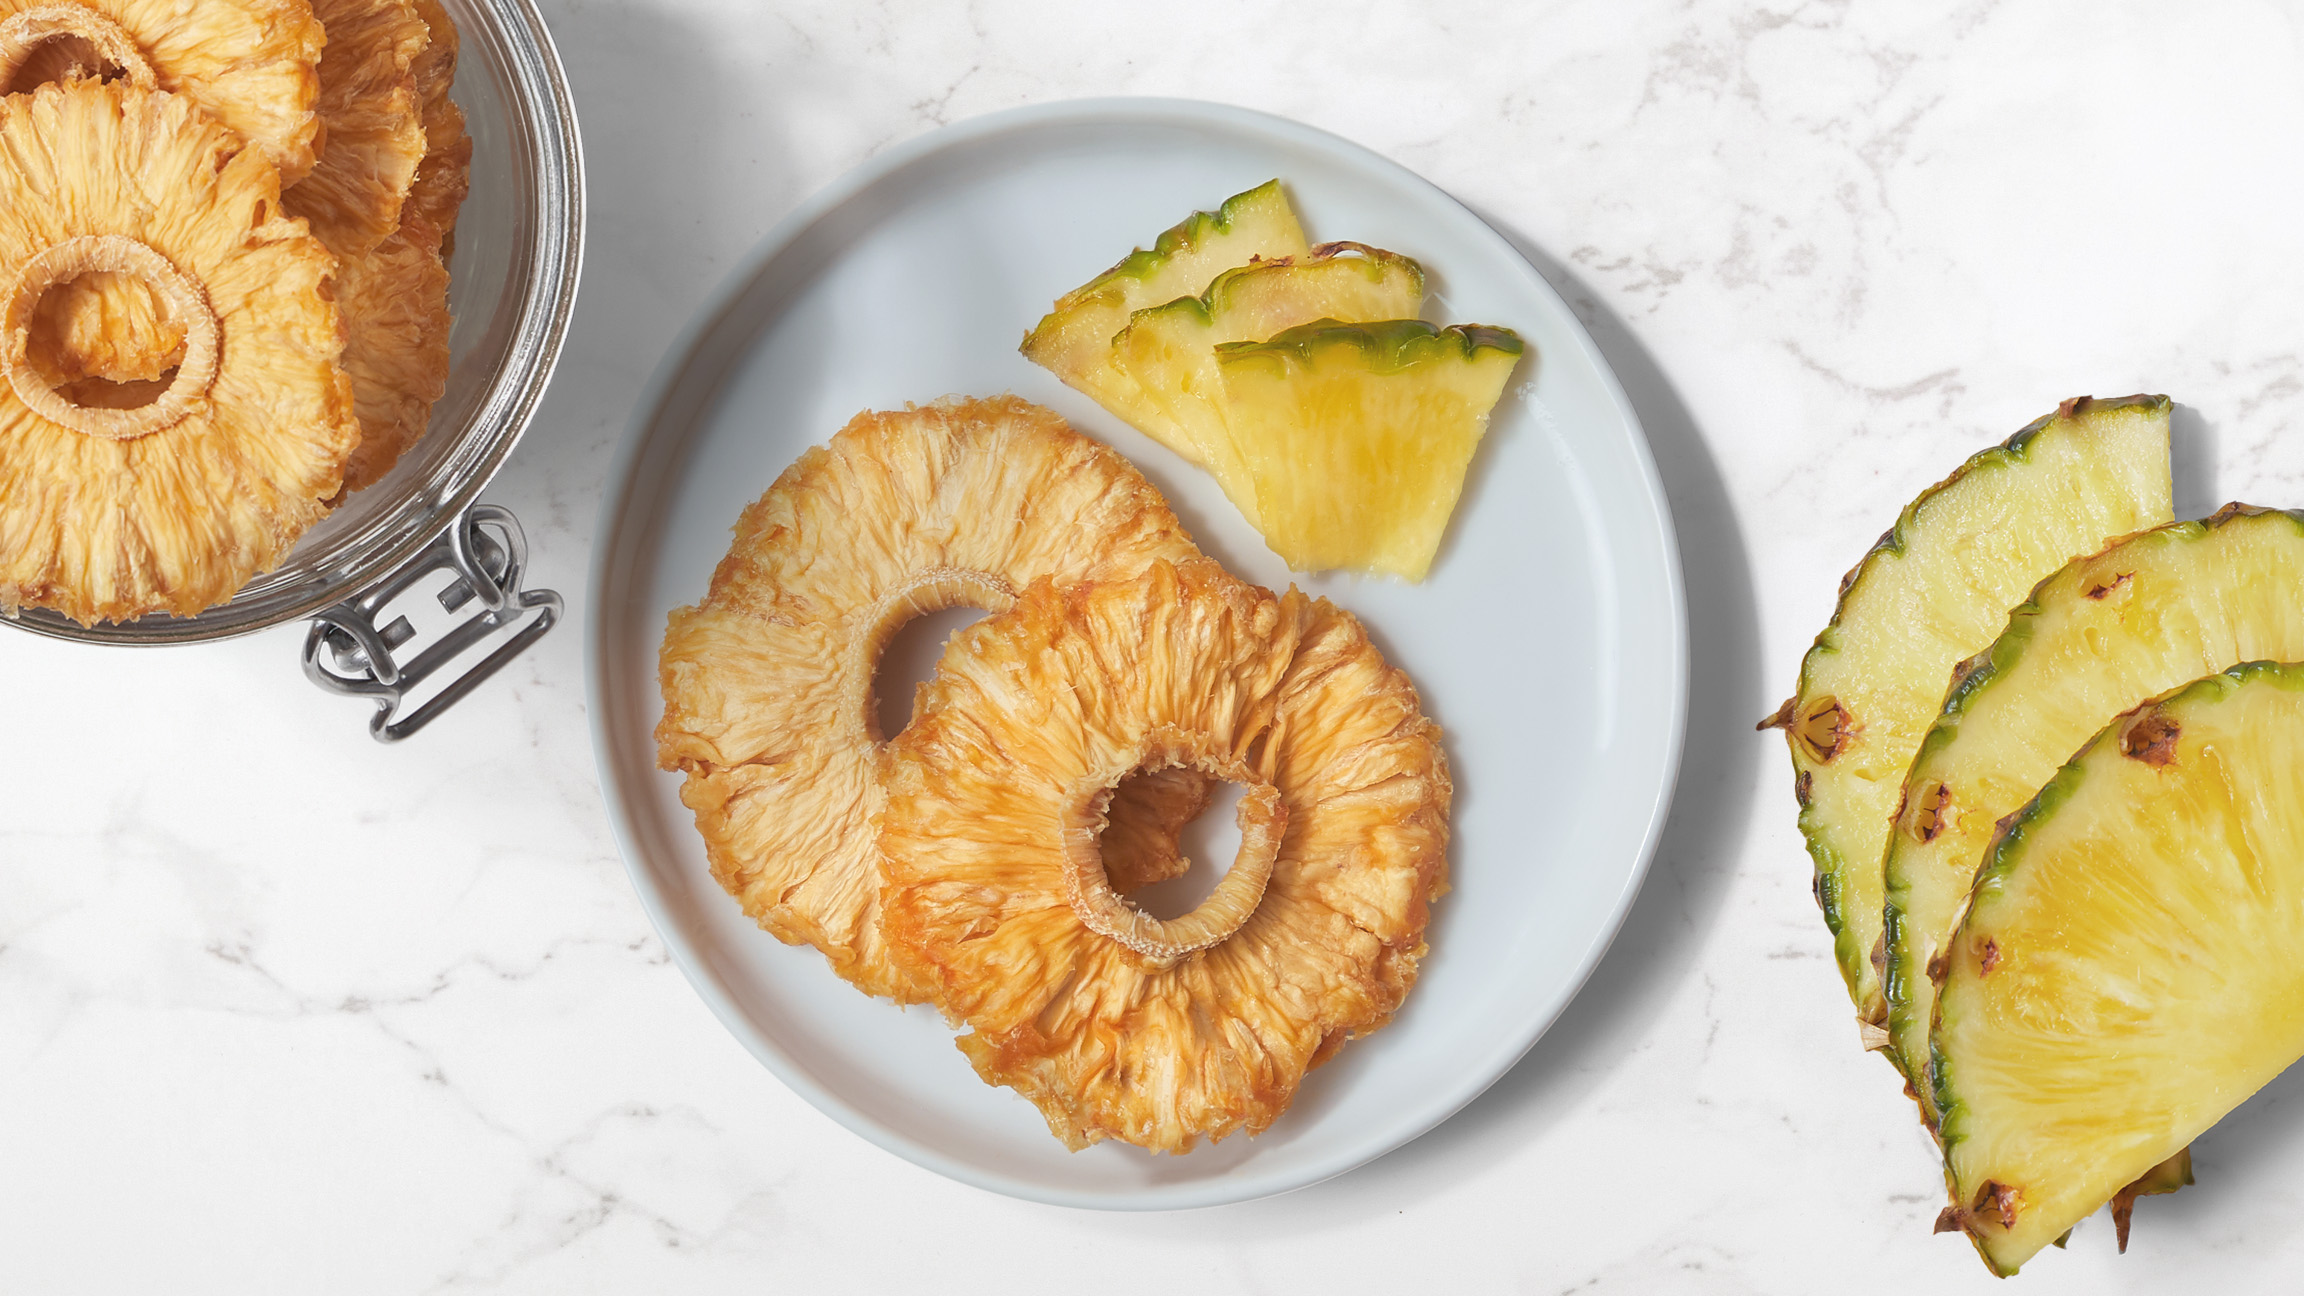 Dried pineapple rings and fresh pineapple slices on a white plate with fresh pieces of pineapple and a jar of dried pineapple rings on a white marble counter top